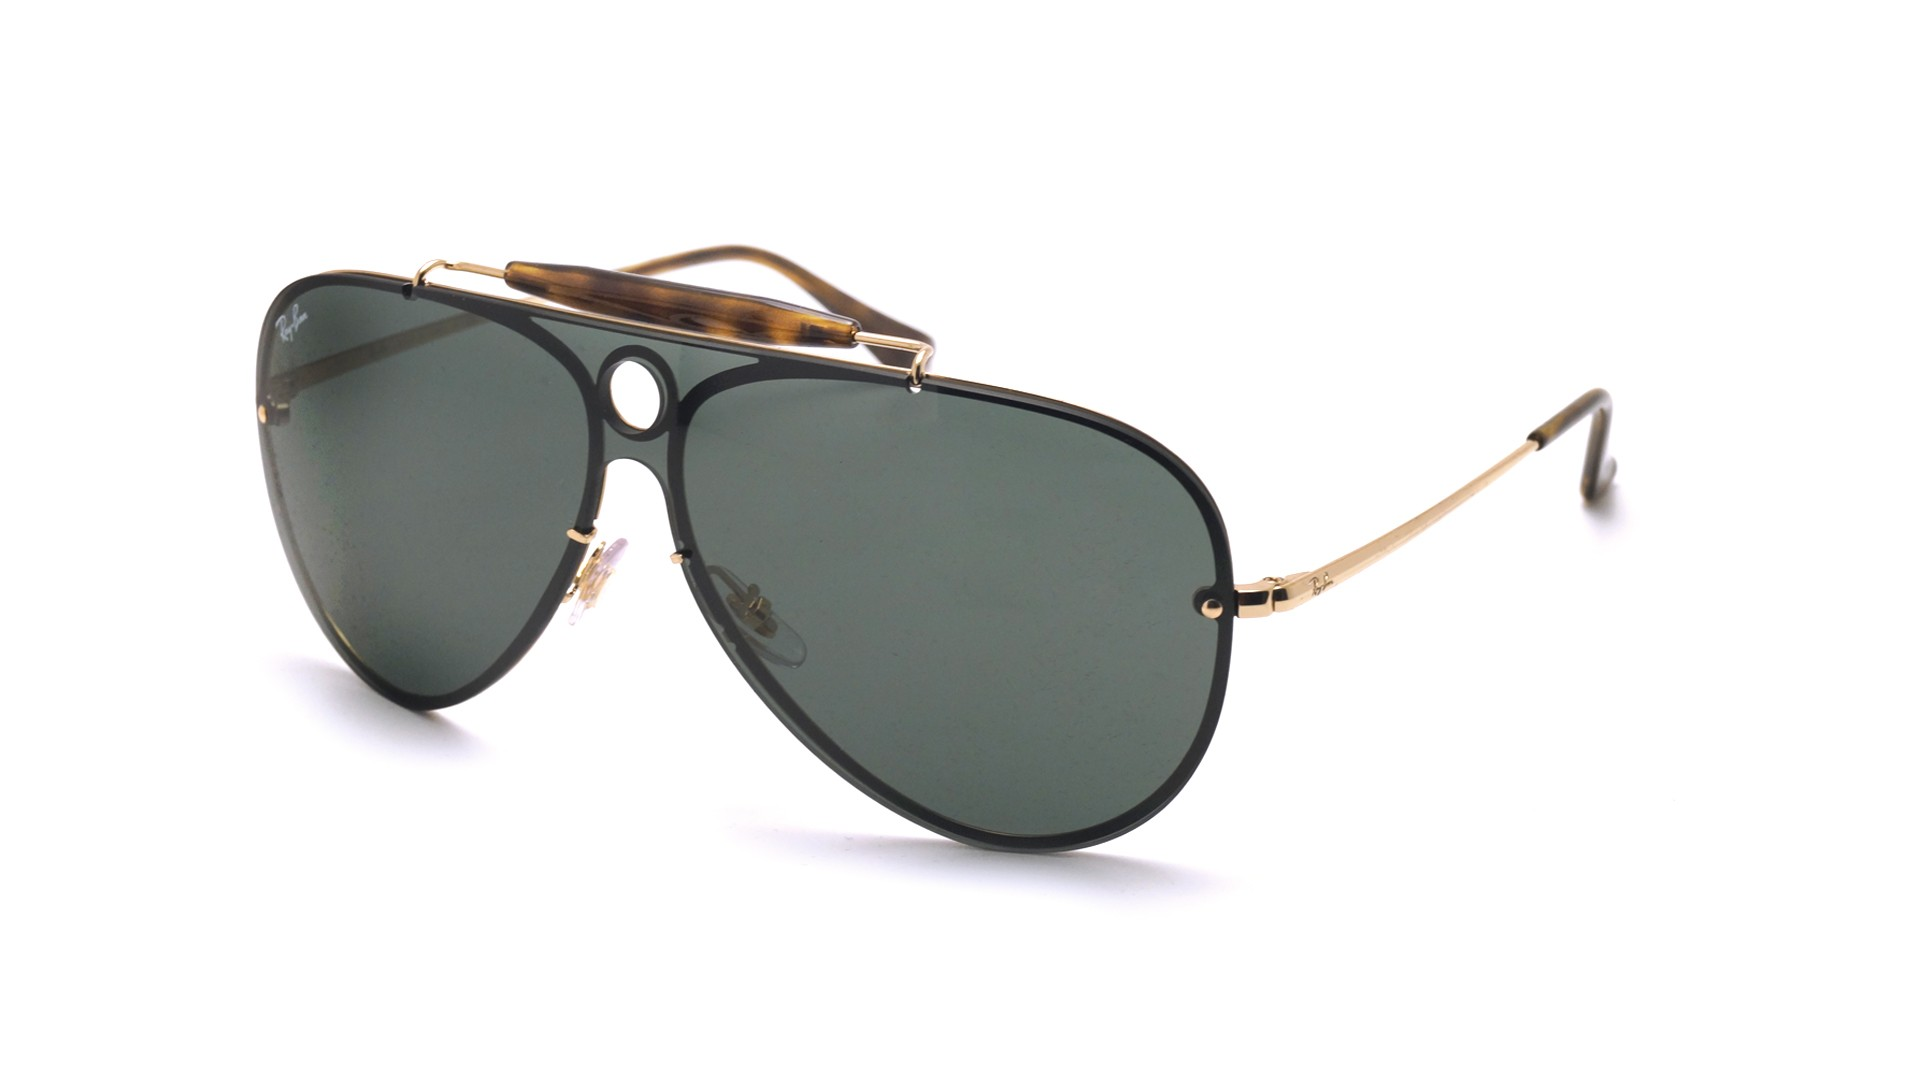 Sunglasses Ray-Ban Shooter Blaze Gold RB3581N 001 71 Large 077fe3ae18